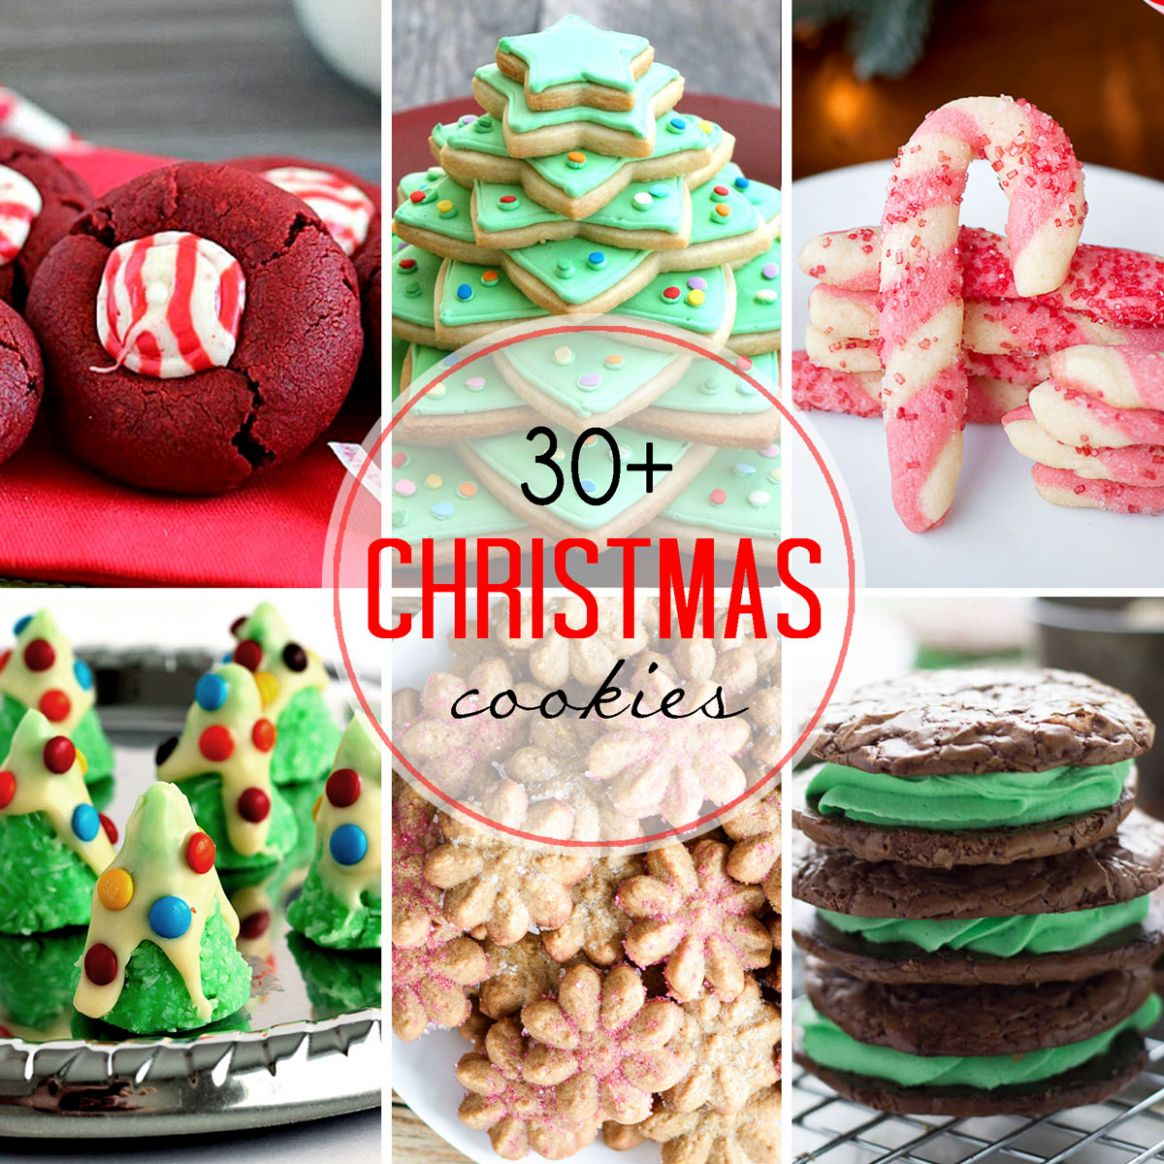 11+ Christmas Cookies Recipes for the Holidays - Healthy Xmas Cookies Recipes